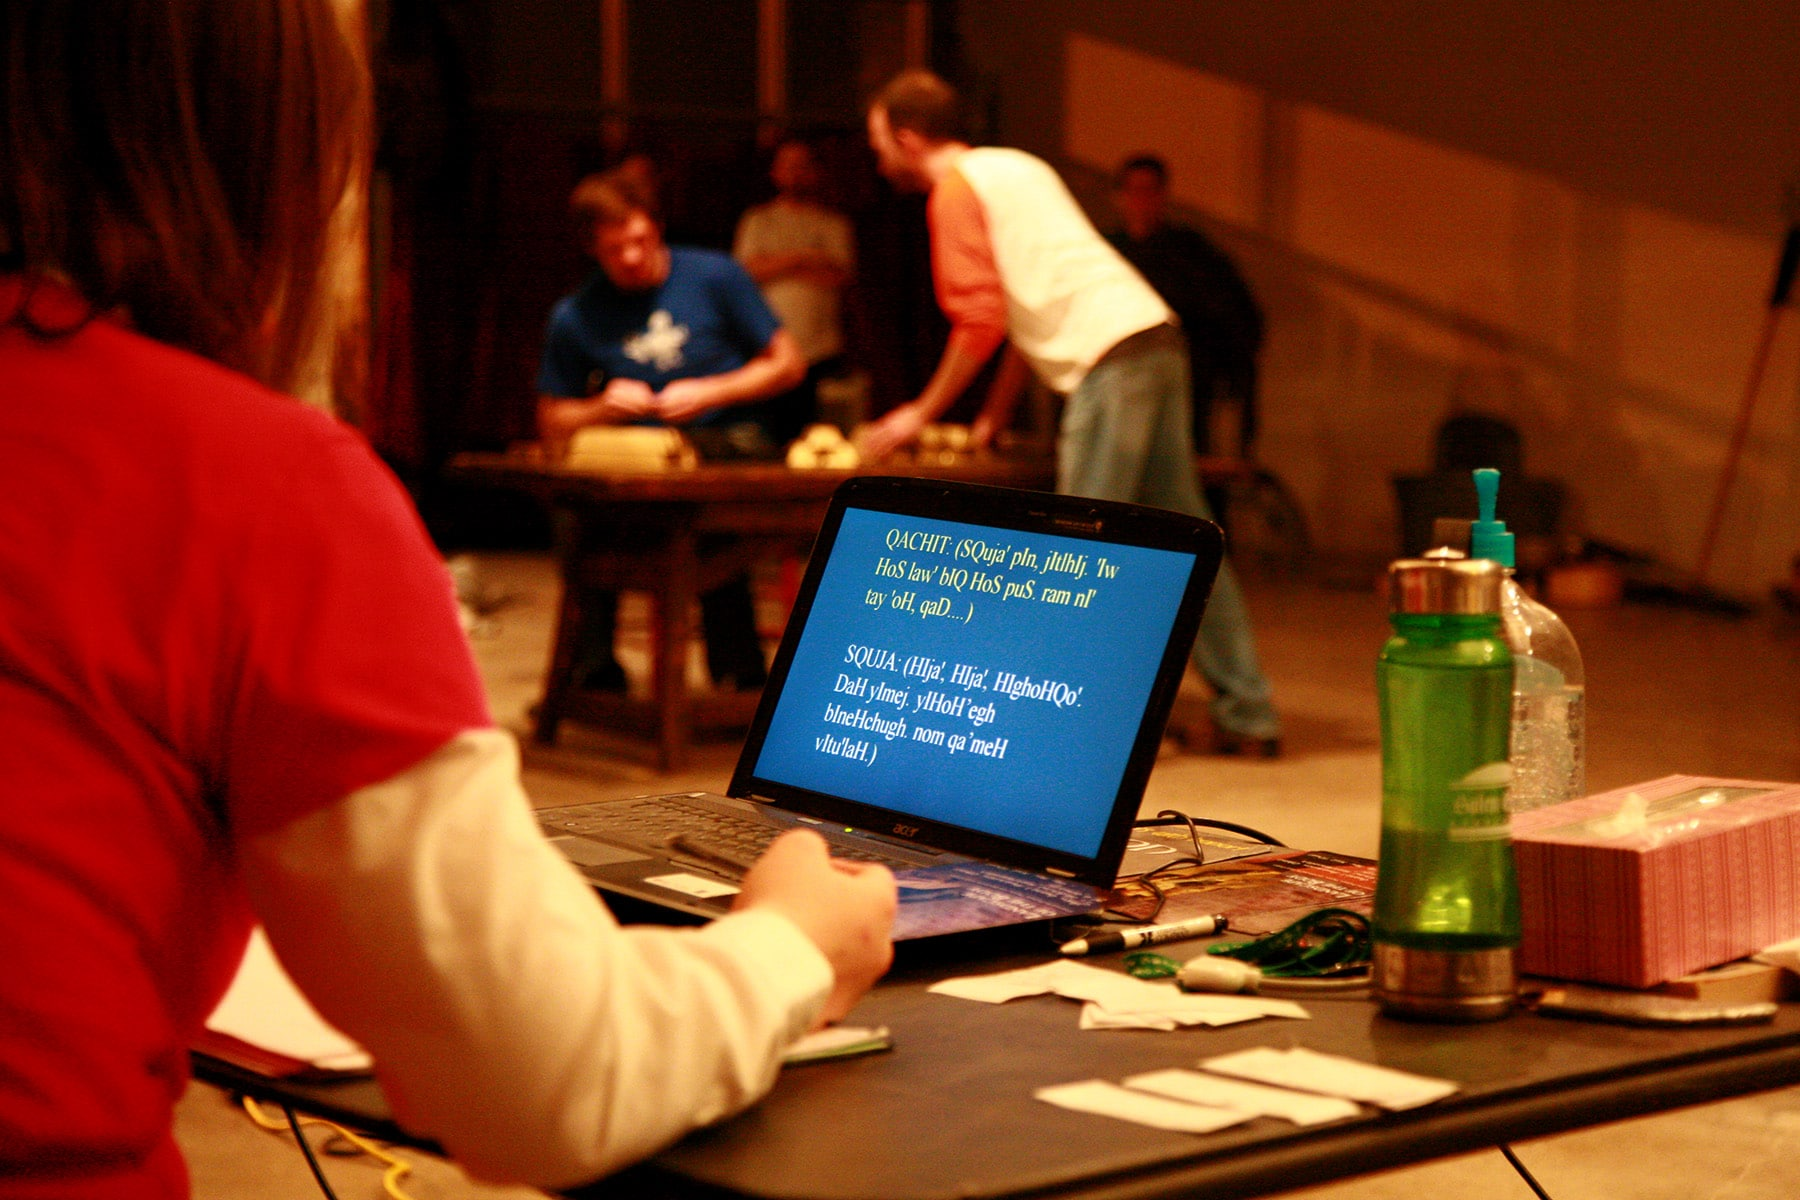 A candid theater practice photo. There is a laptop screen in view, with Klingon language across it.